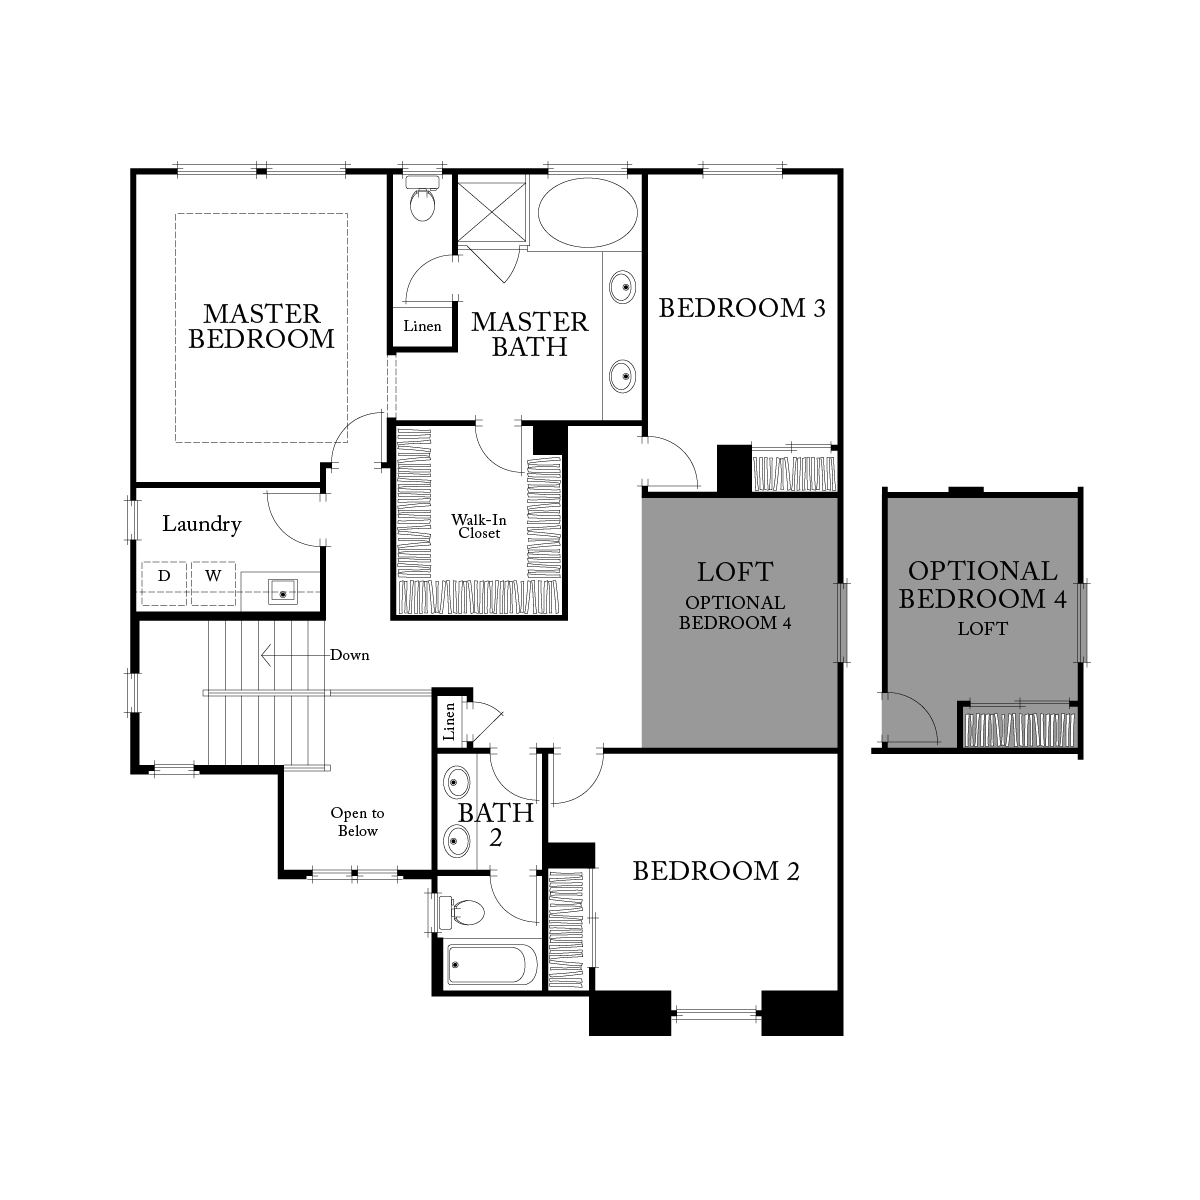 Second floor residence 2 floor plan | Ambrosia at Glen Loma Ranch in Gilroy, CA | Brookfield Residential